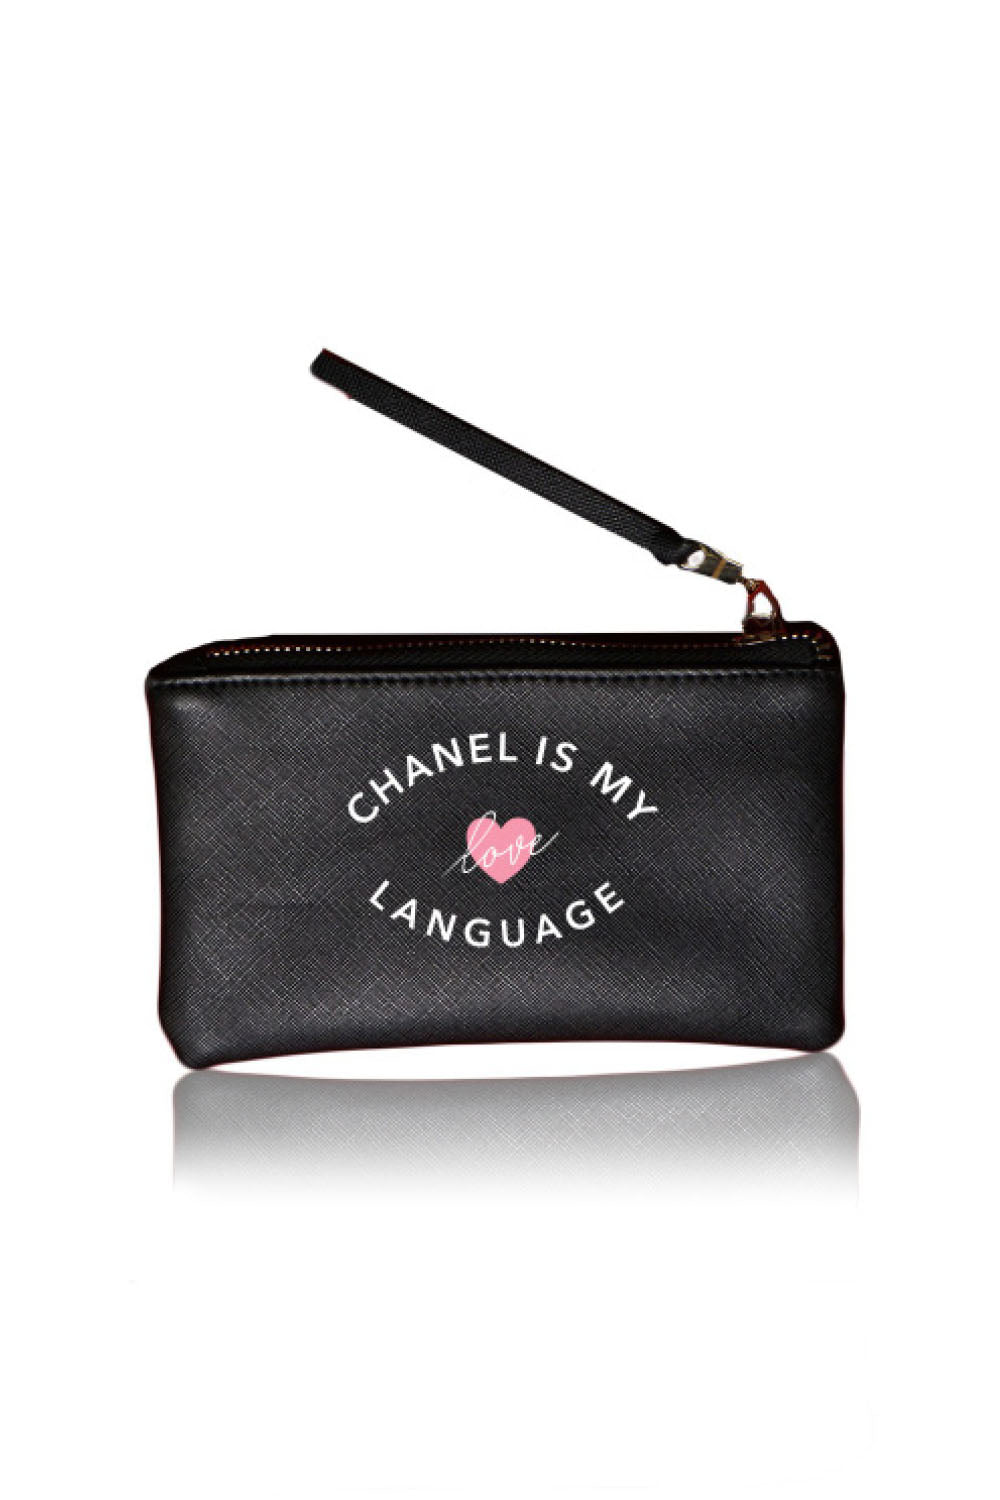 VEGAN POUCH - Chanel Is My Love Language